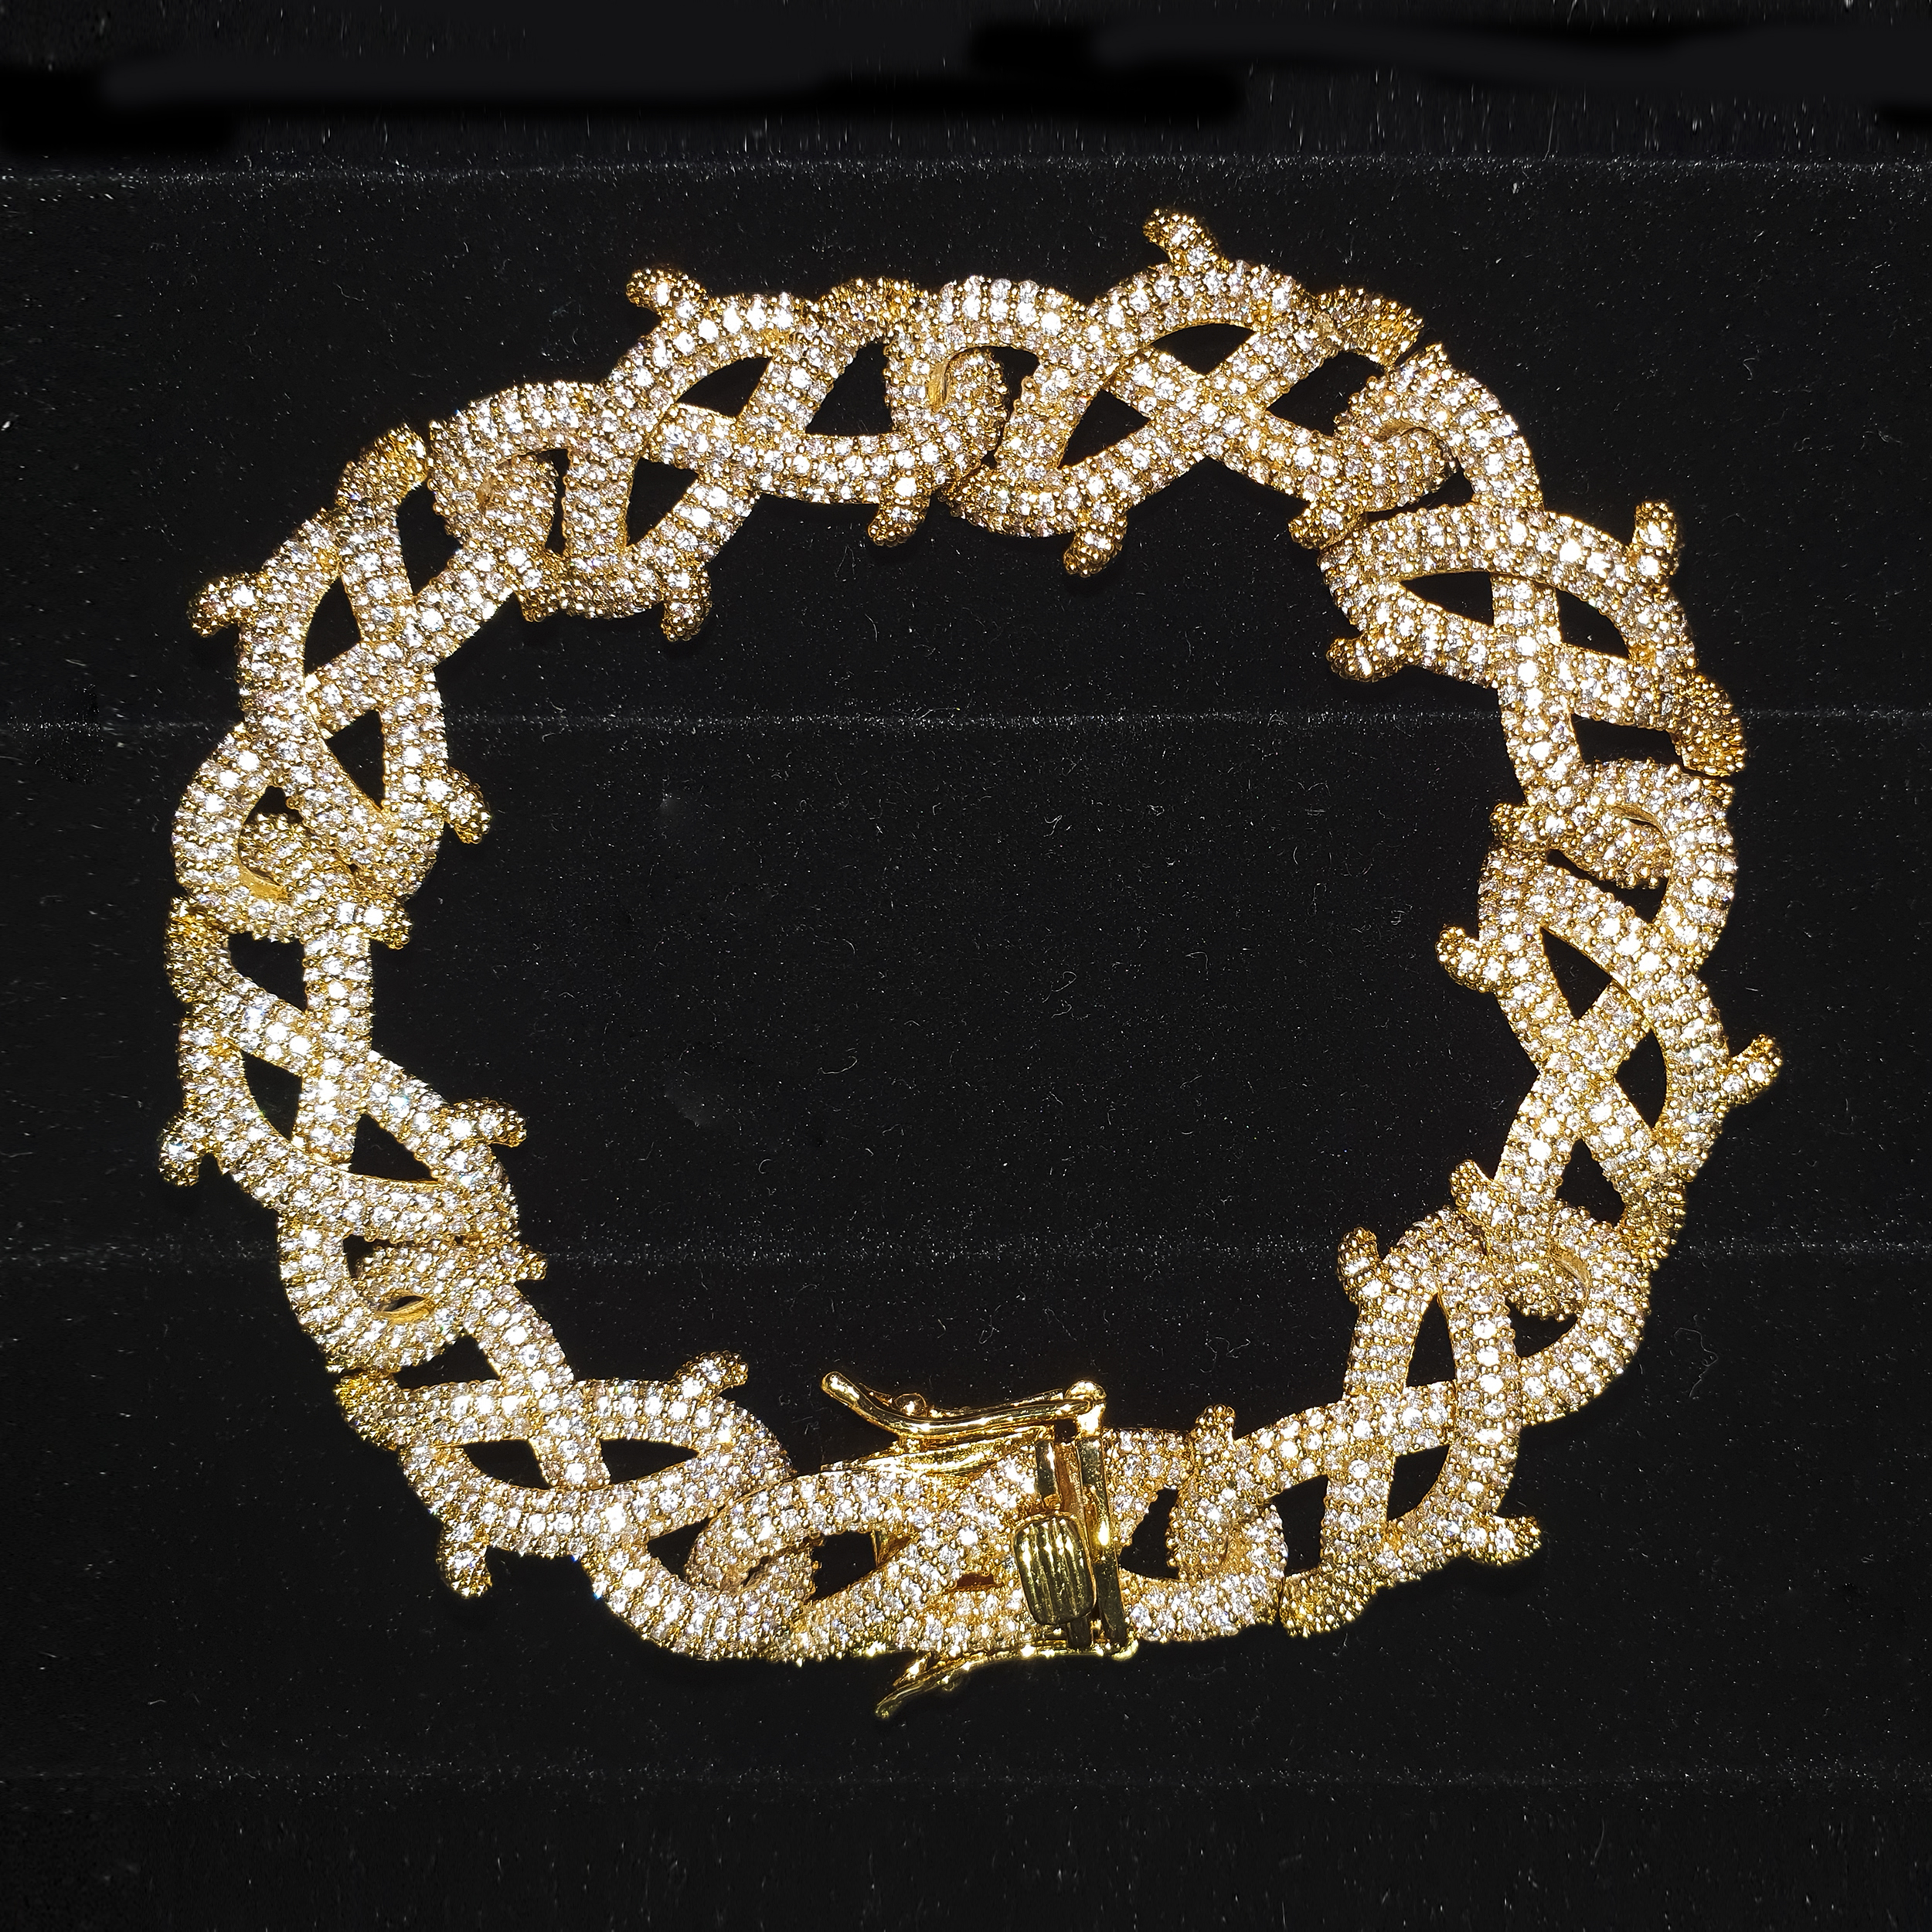 ICED OUT BARBED WIRE LINK BRACELET IN GOLD